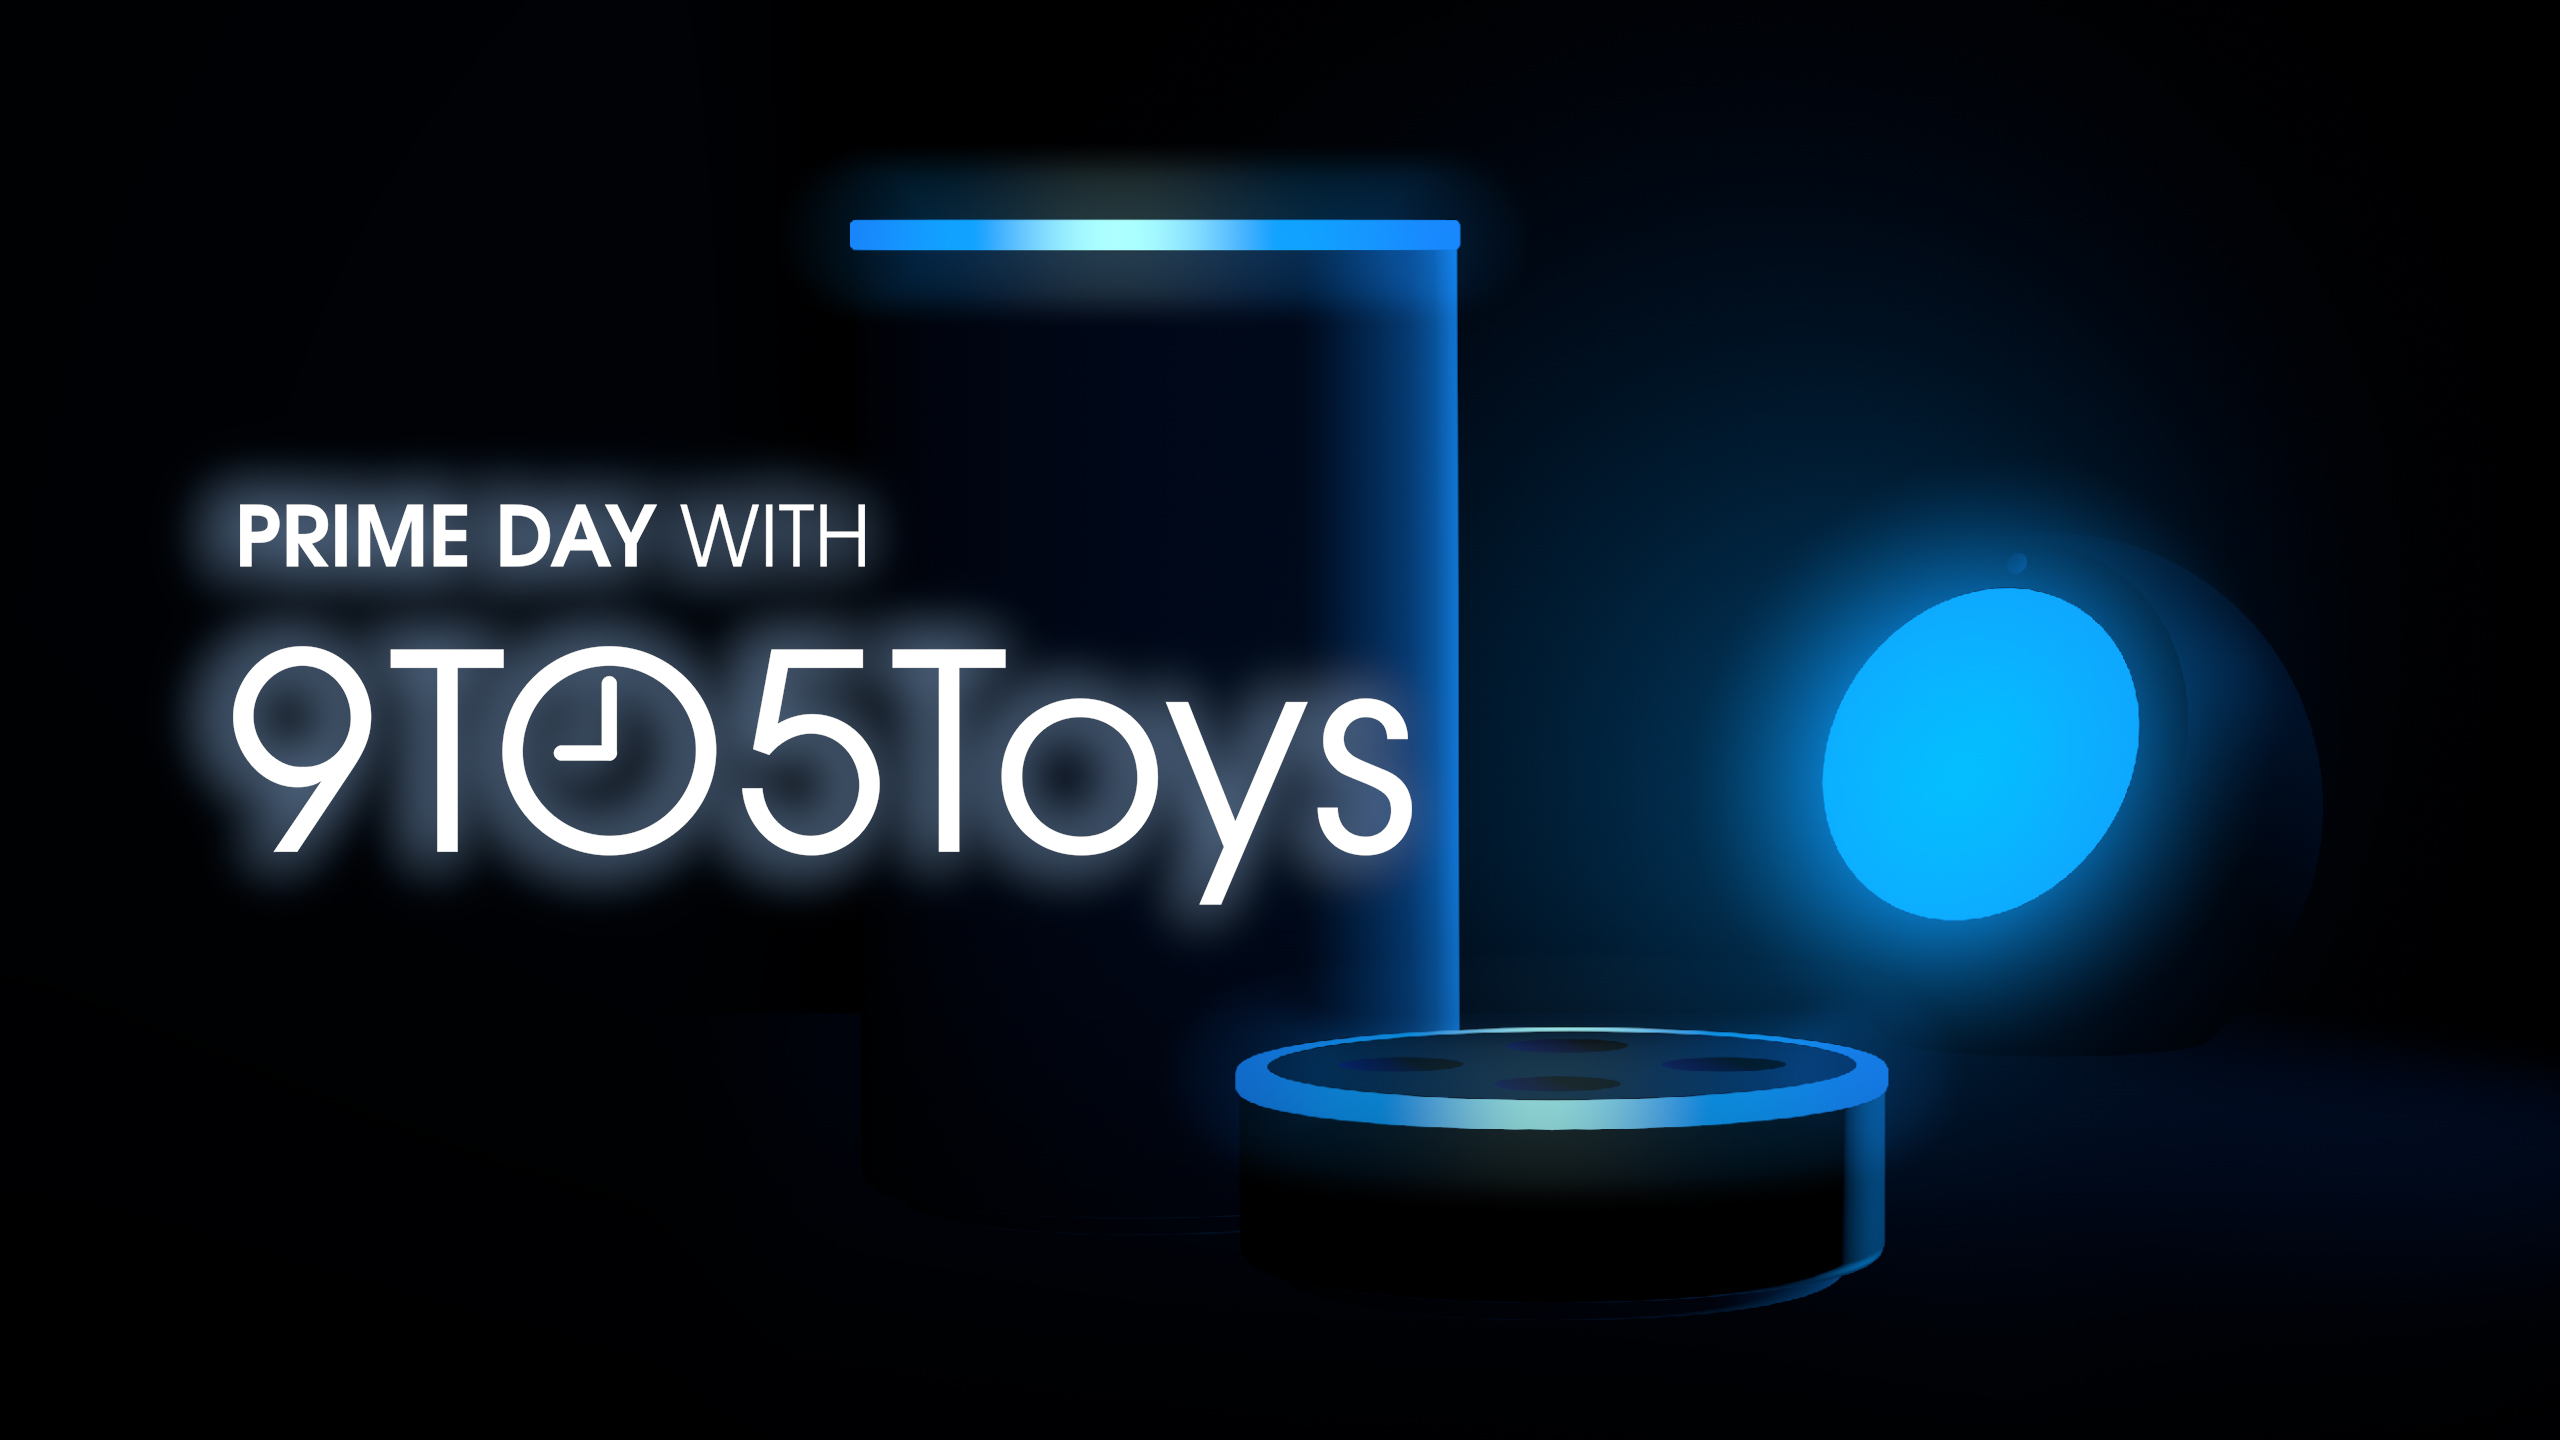 Prime Day 2019 officially announced for mid-July - 9to5Toys